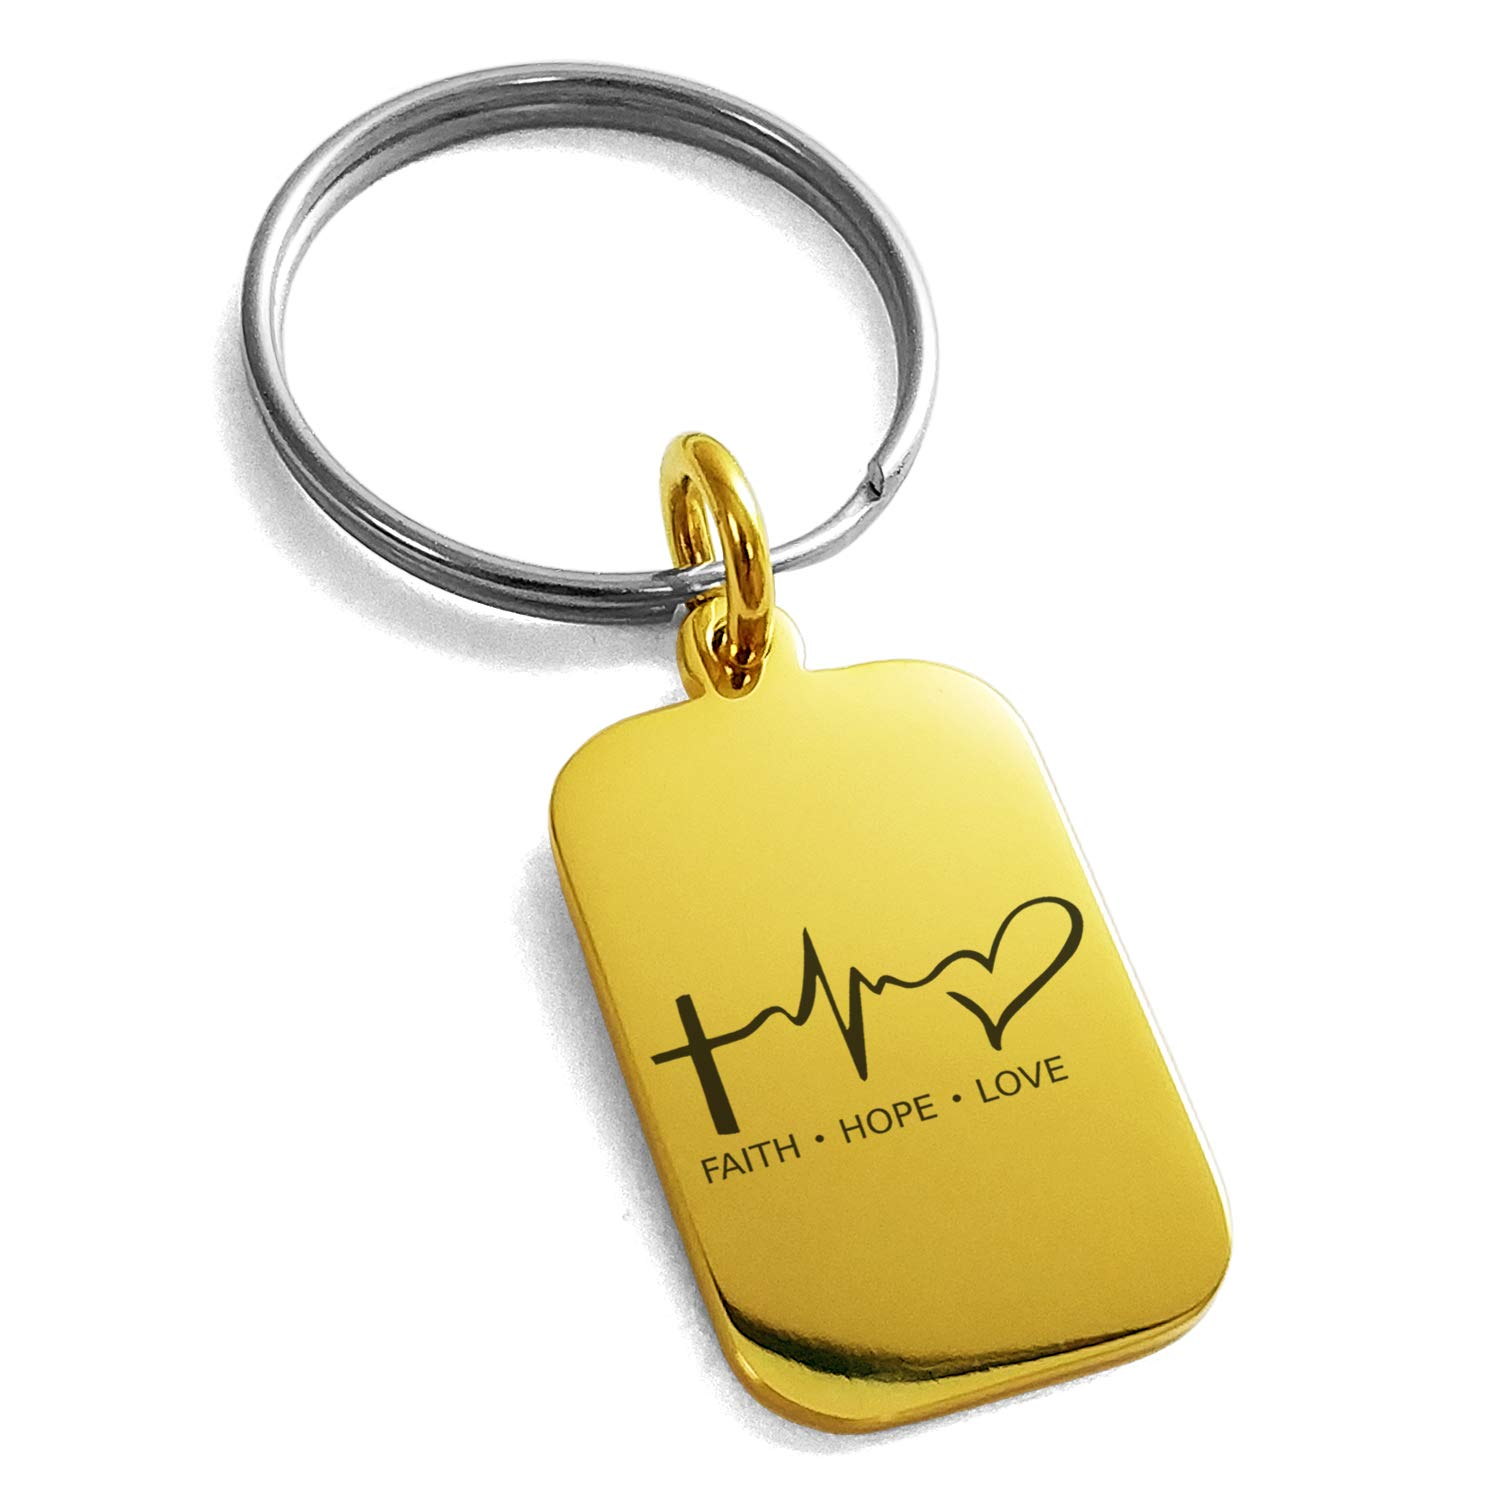 Tioneer Gold Plated Stainless Steel Faith Hope Love Lifeline Engraved Small Rectangle Dog Tag Charm Keychain Keyring